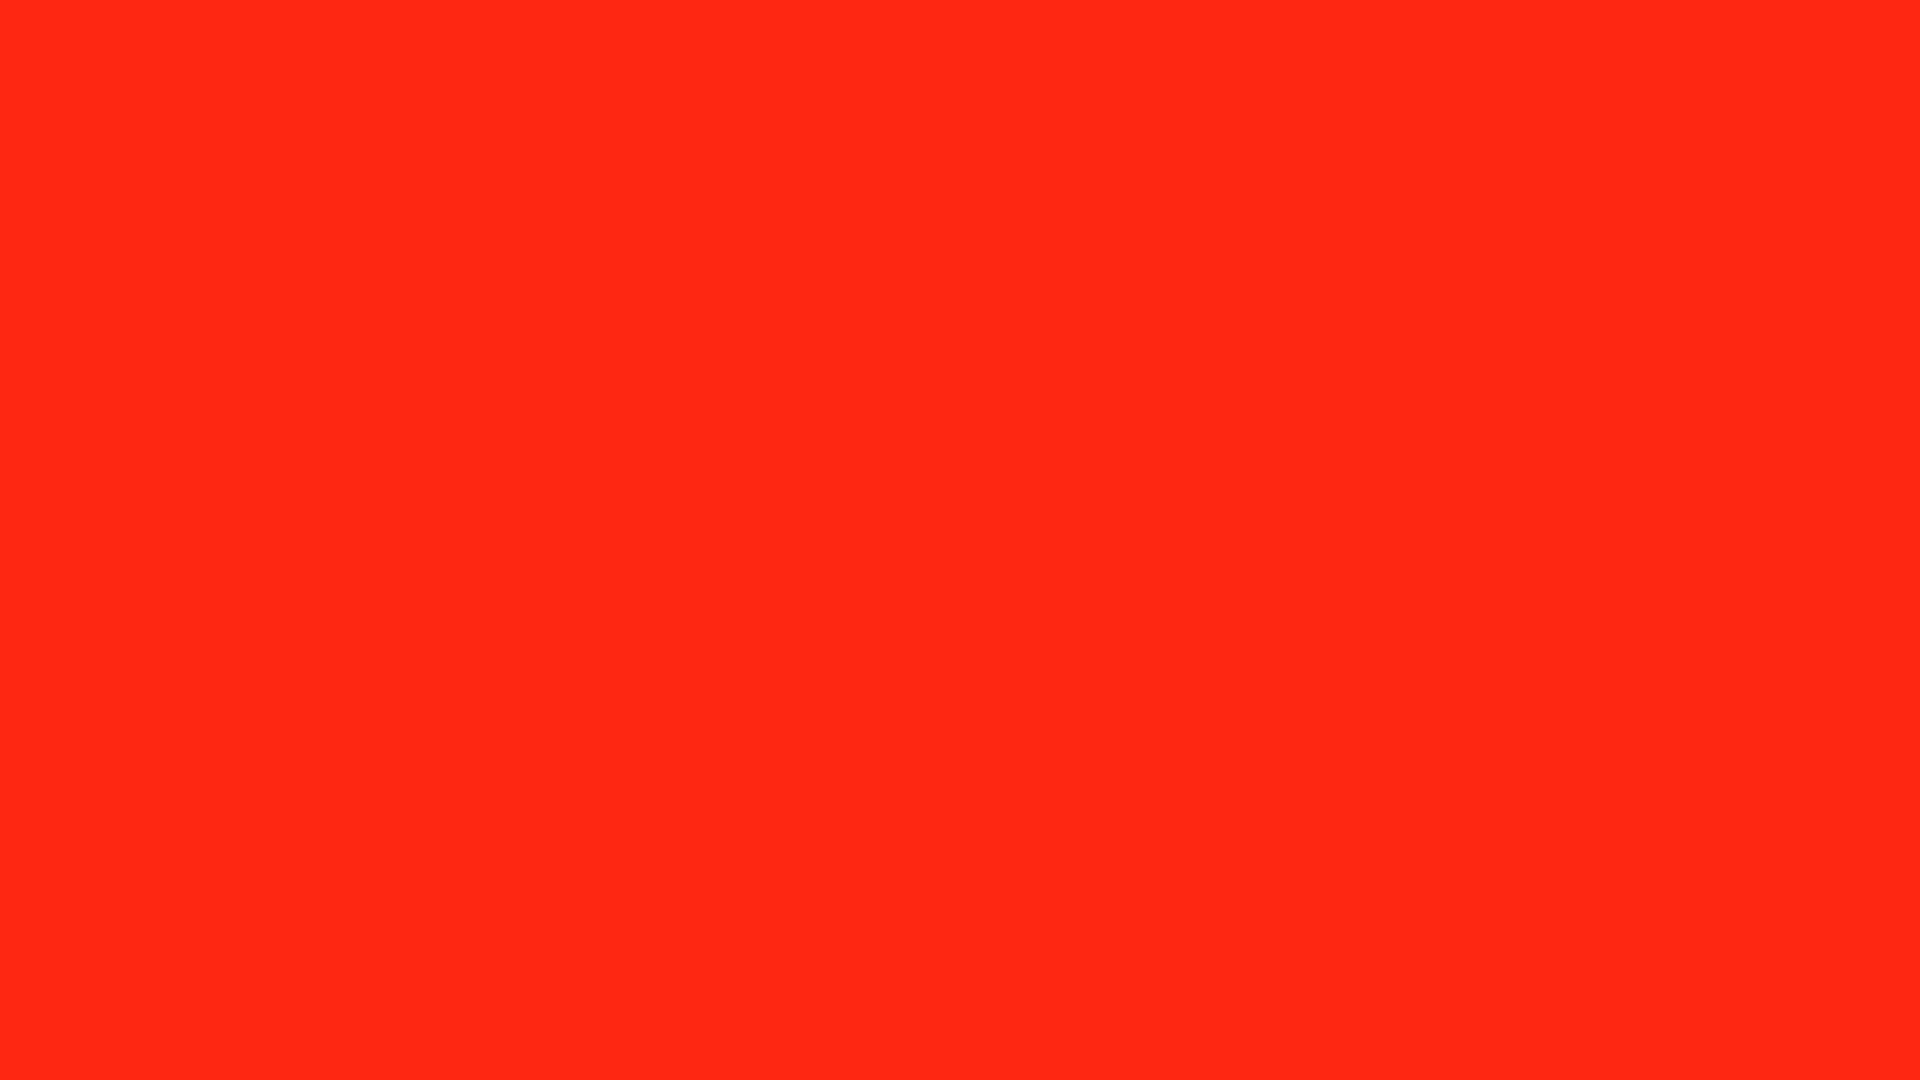 1920x1080 Red RYB Solid Color Background